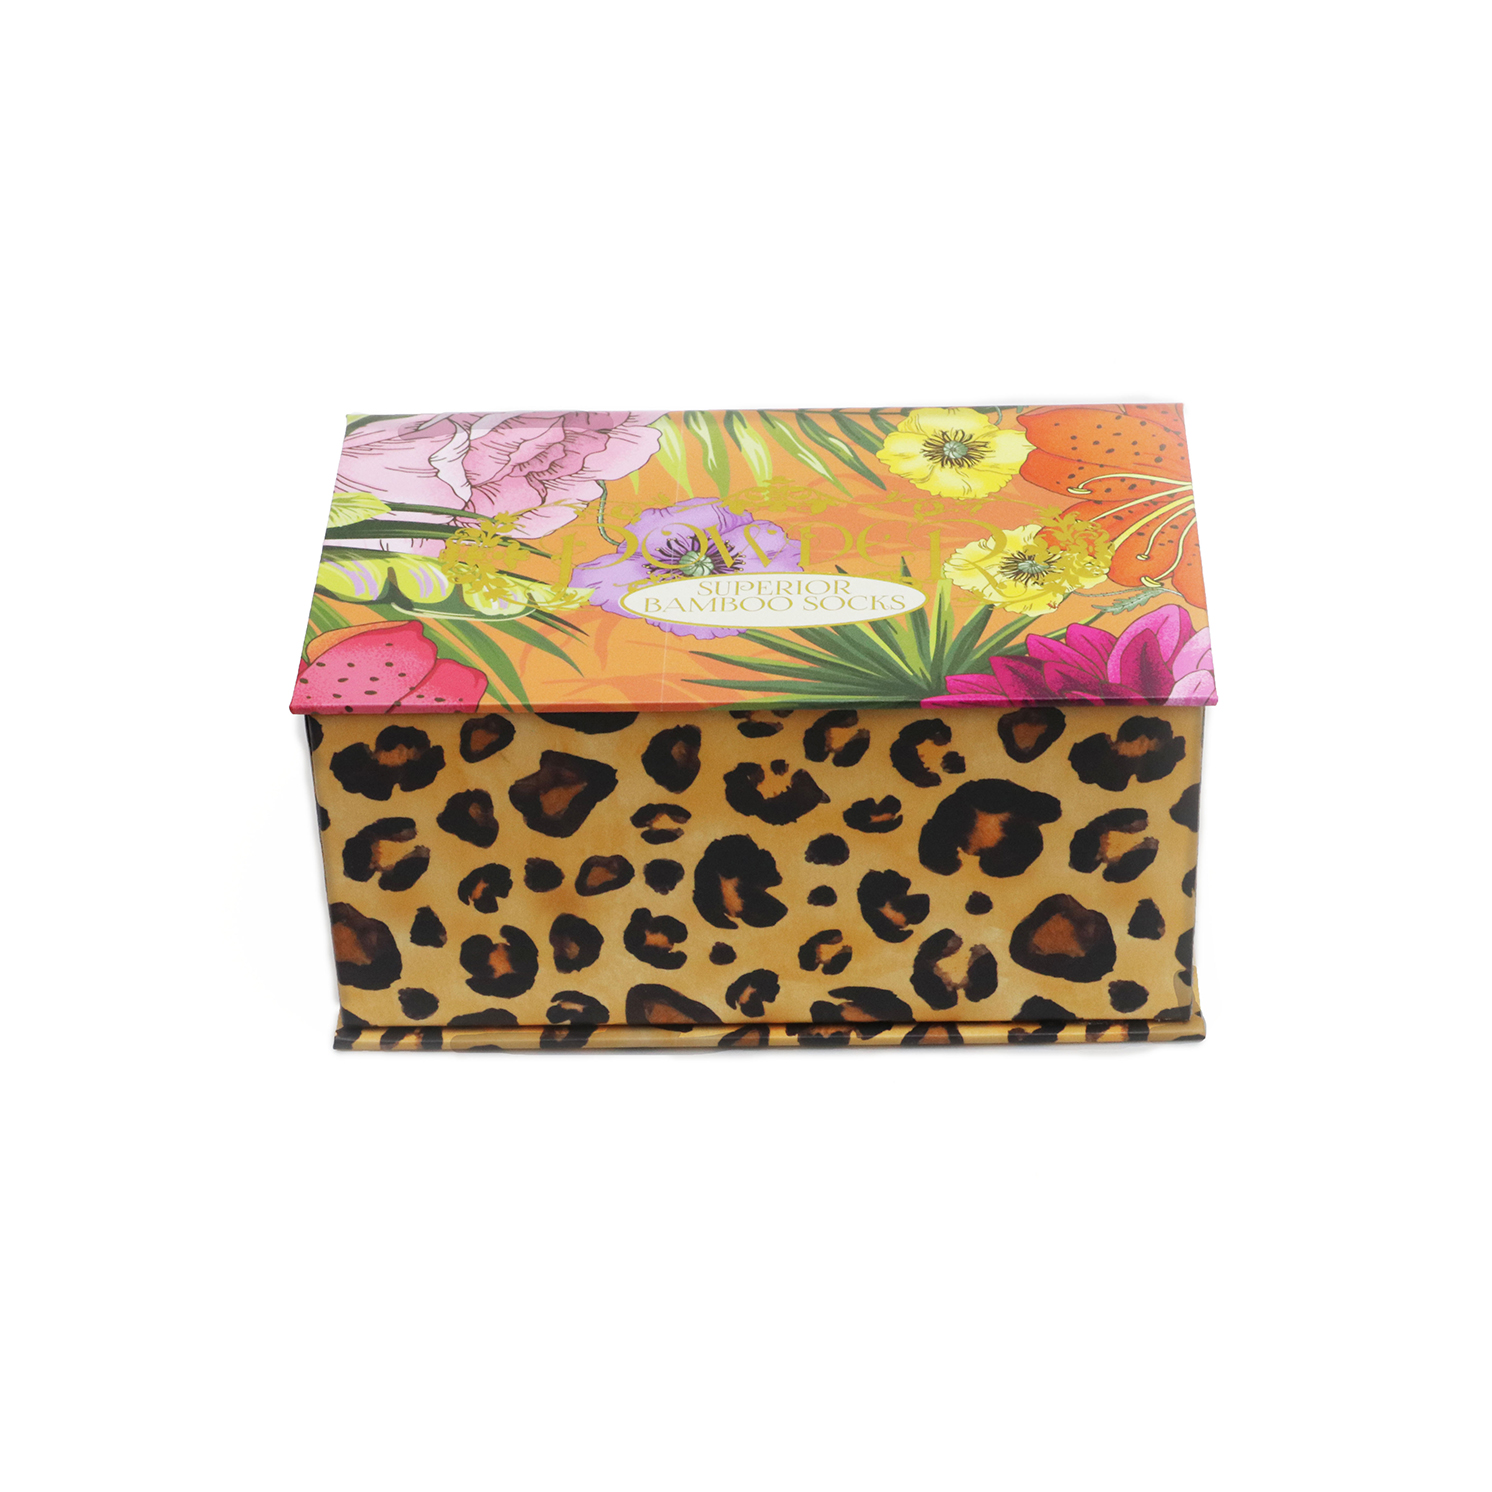 Powder – Set of 3 Pairs of Blooming Jungle Ankle Socks in Presentation Box